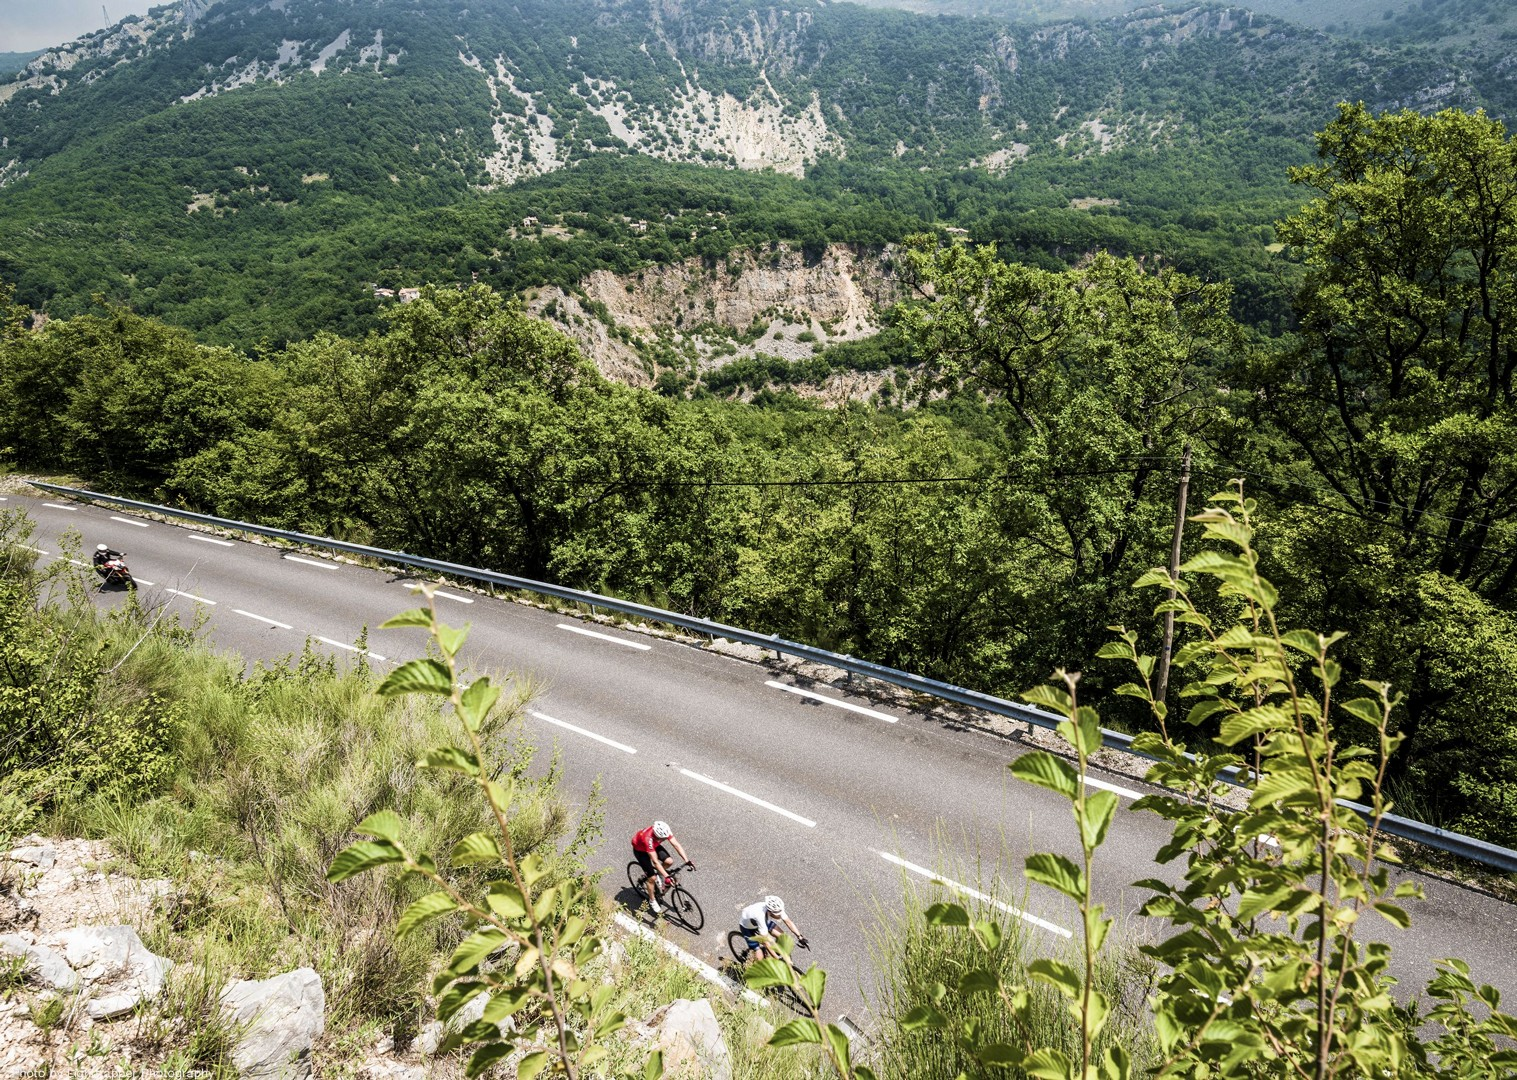 cote-d'azur-france-cycle-medterranean-sea -holiday-road.jpg - France - Provence - Alpes Maritimes - Guided Road Cycling Holiday - Road Cycling